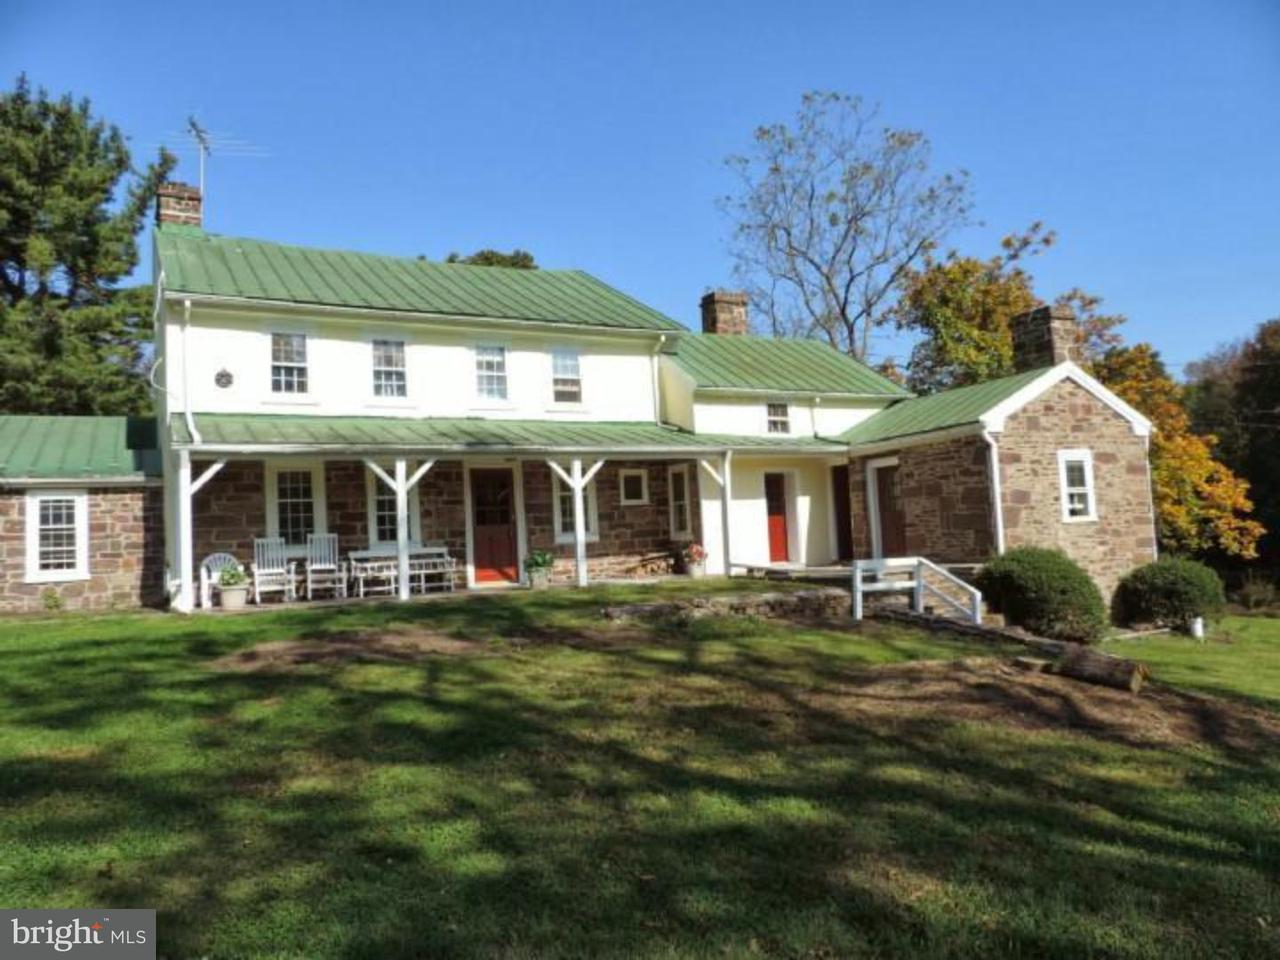 Single Family Home for Rent at 2045 BETHEL RD #FRMHSE Lansdale, Pennsylvania 19446 United States